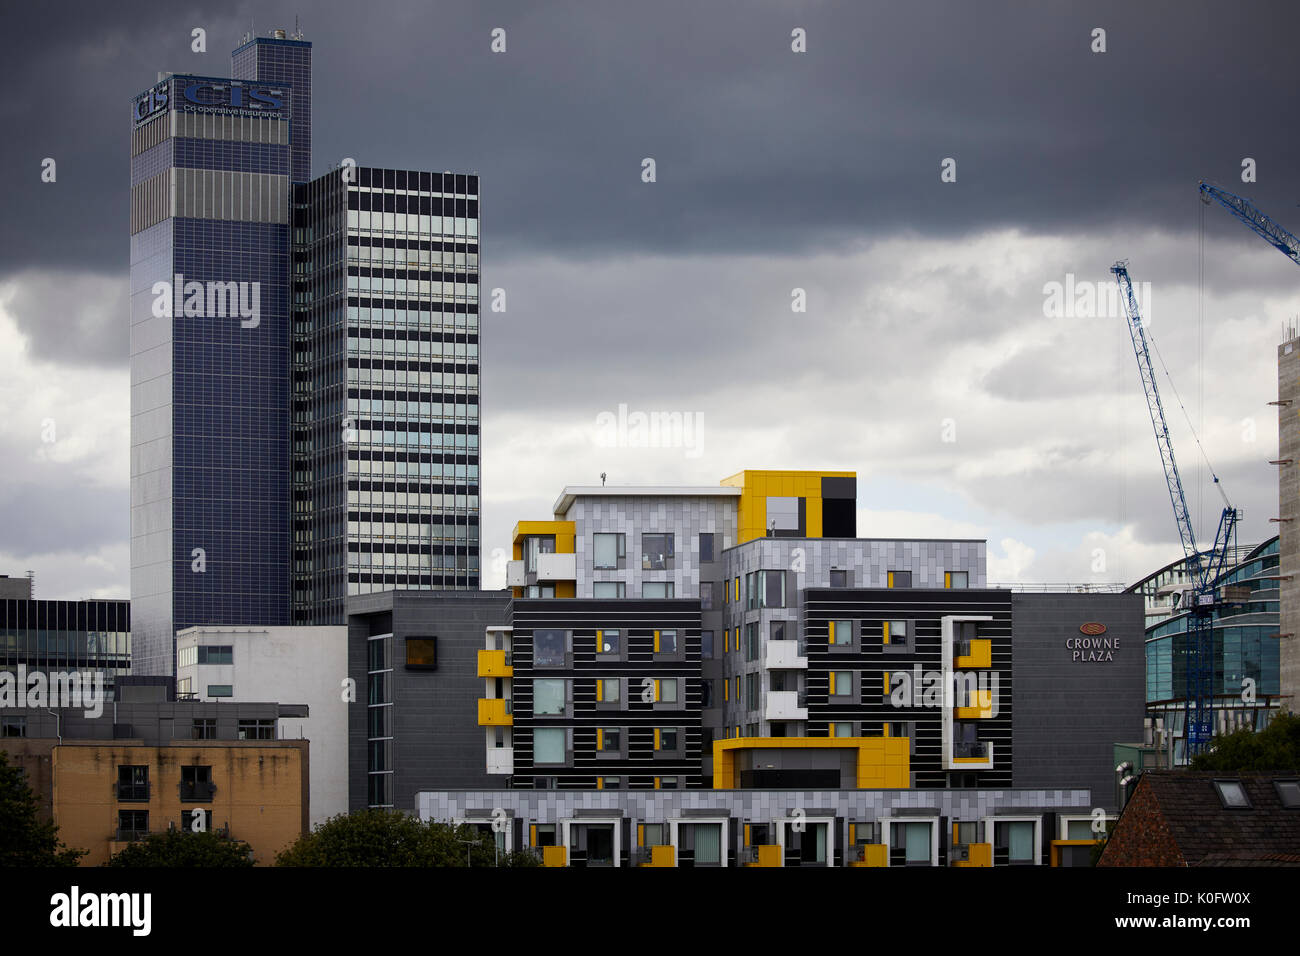 Manchester Northern Quarter modern yelow Smithfield apartments, Smithfield Square framed by the Coop CIS tower - Stock Image